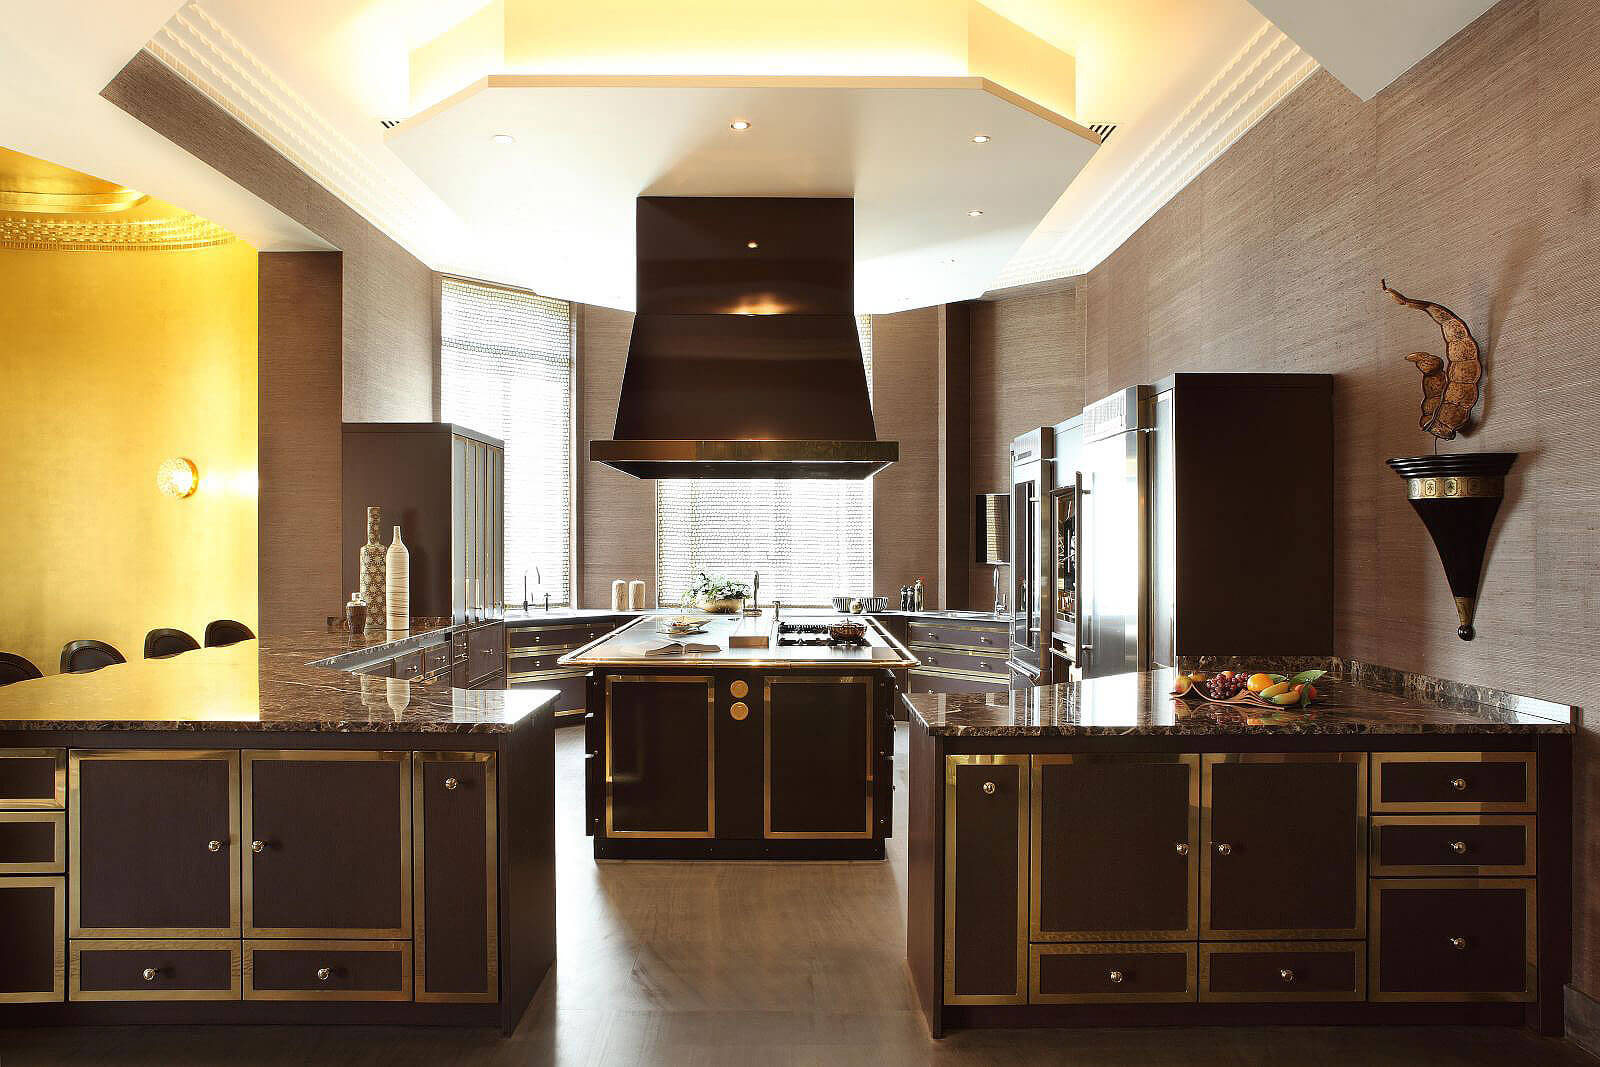 Diamant sur le Parc, the kitchen | Luxury Real Estate, Paris 16, France | COGEMAD • Finest Residences